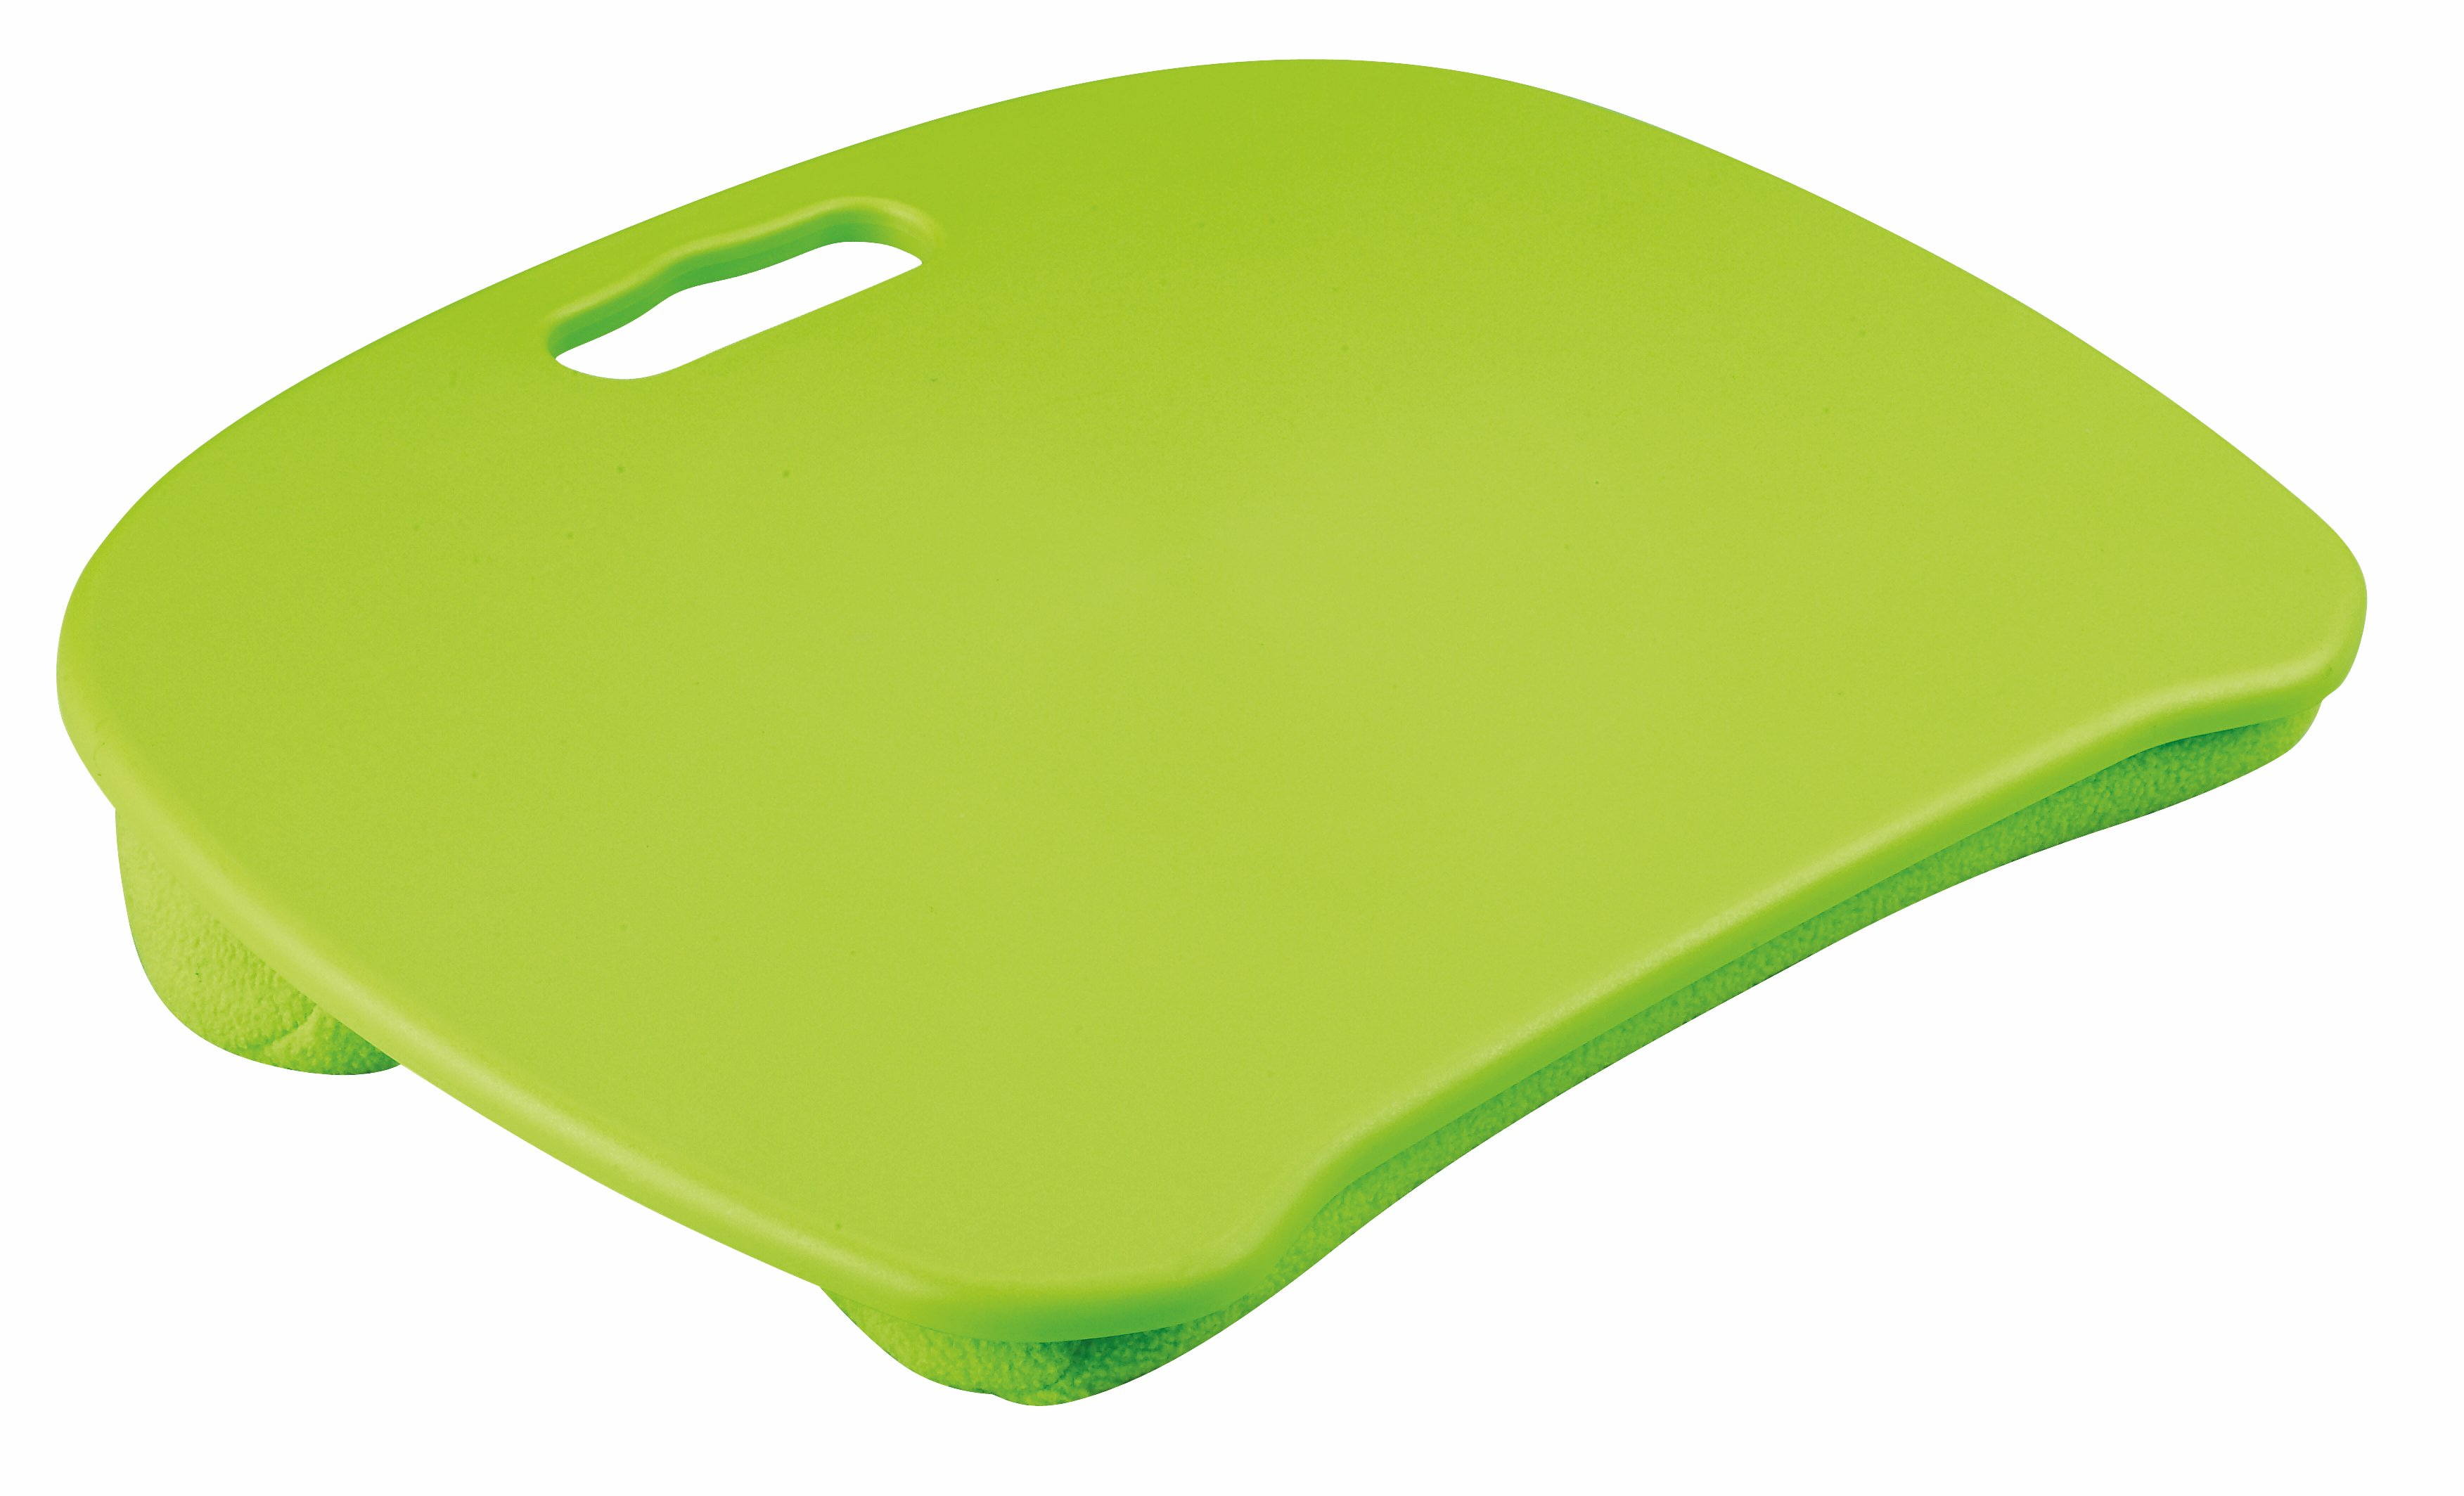 Suport laptop verde B-28 somproduct.ro